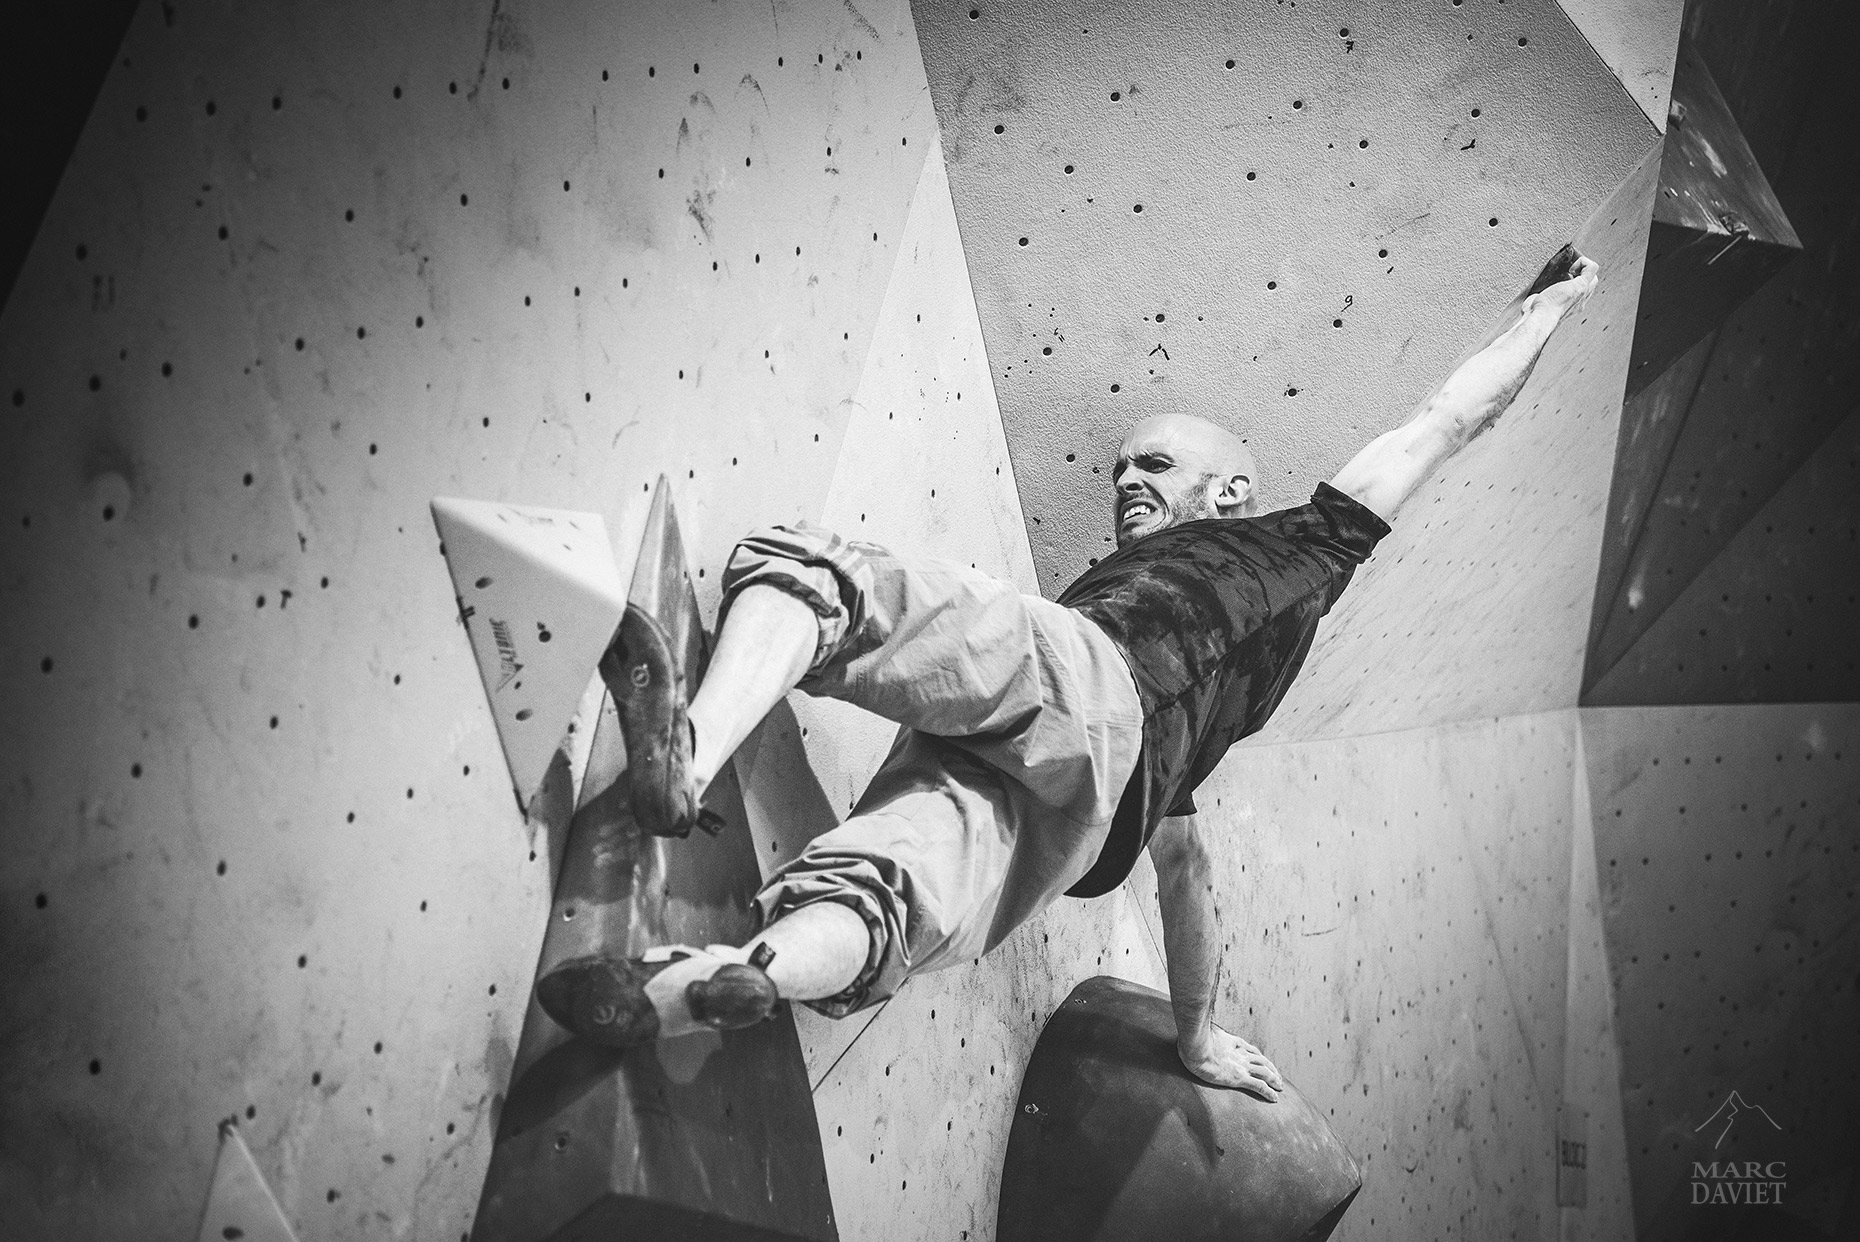 Bouldering Competition - Marc Daviet Photography